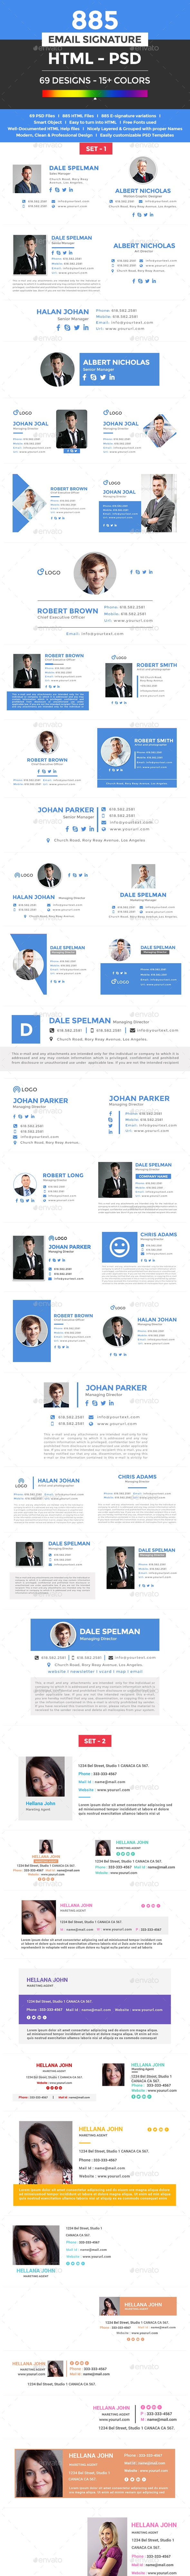 885 Flat & Modern Email Signatures - HTML & PSD Files - Miscellaneous Social Media